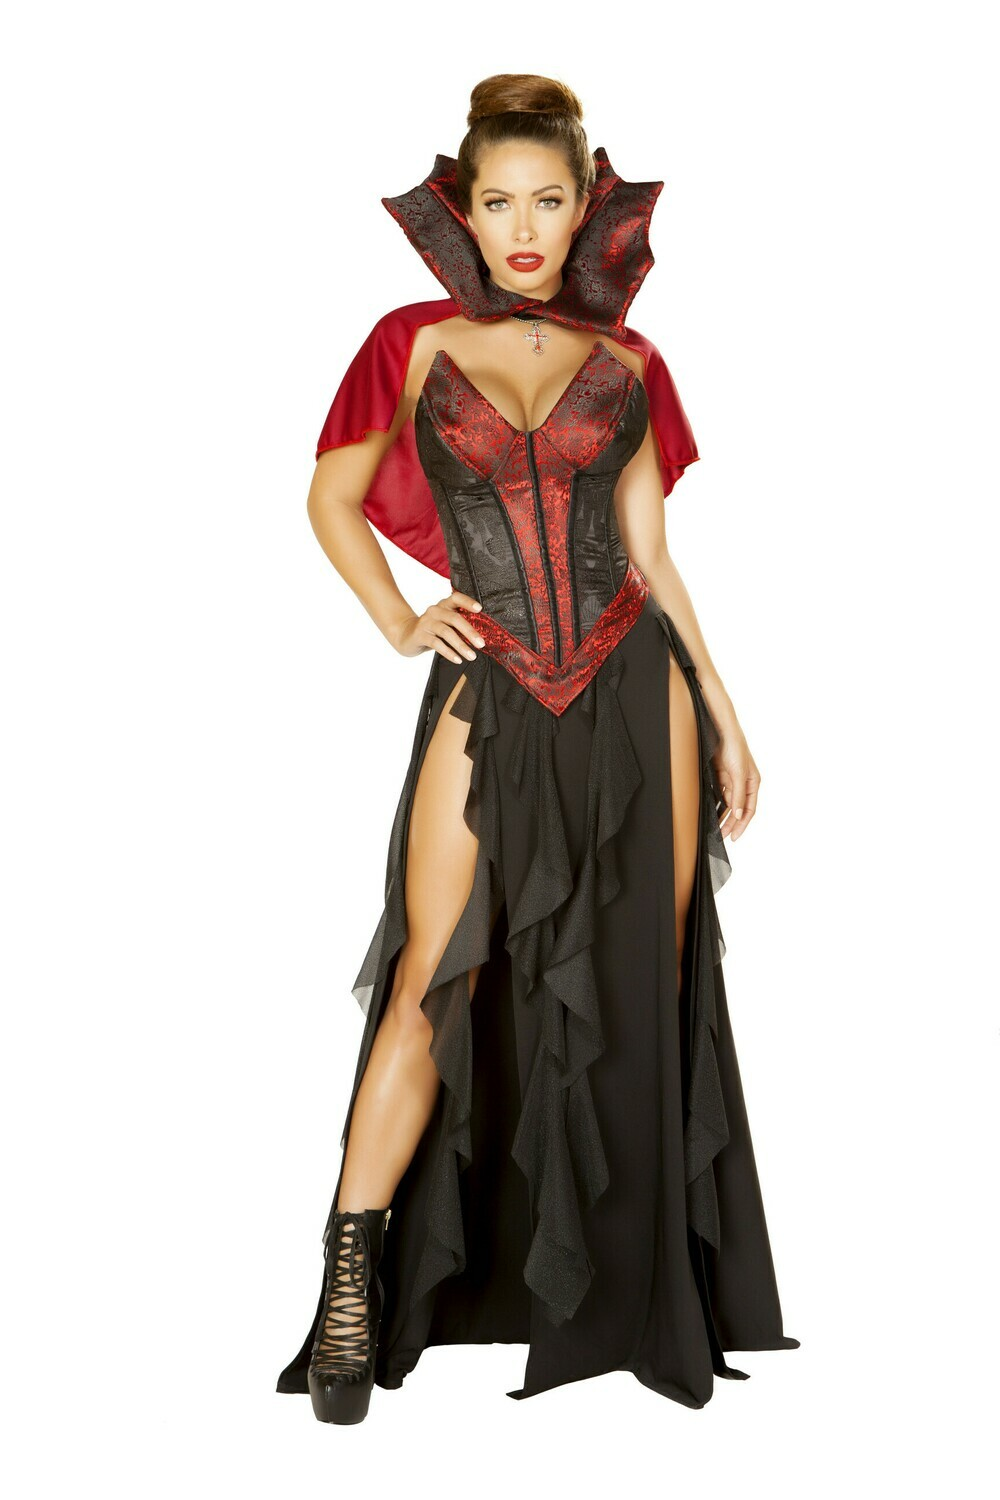 COSTUMES| WITCHES & VAMPIRES| 4pc Blood Lusting Vampire